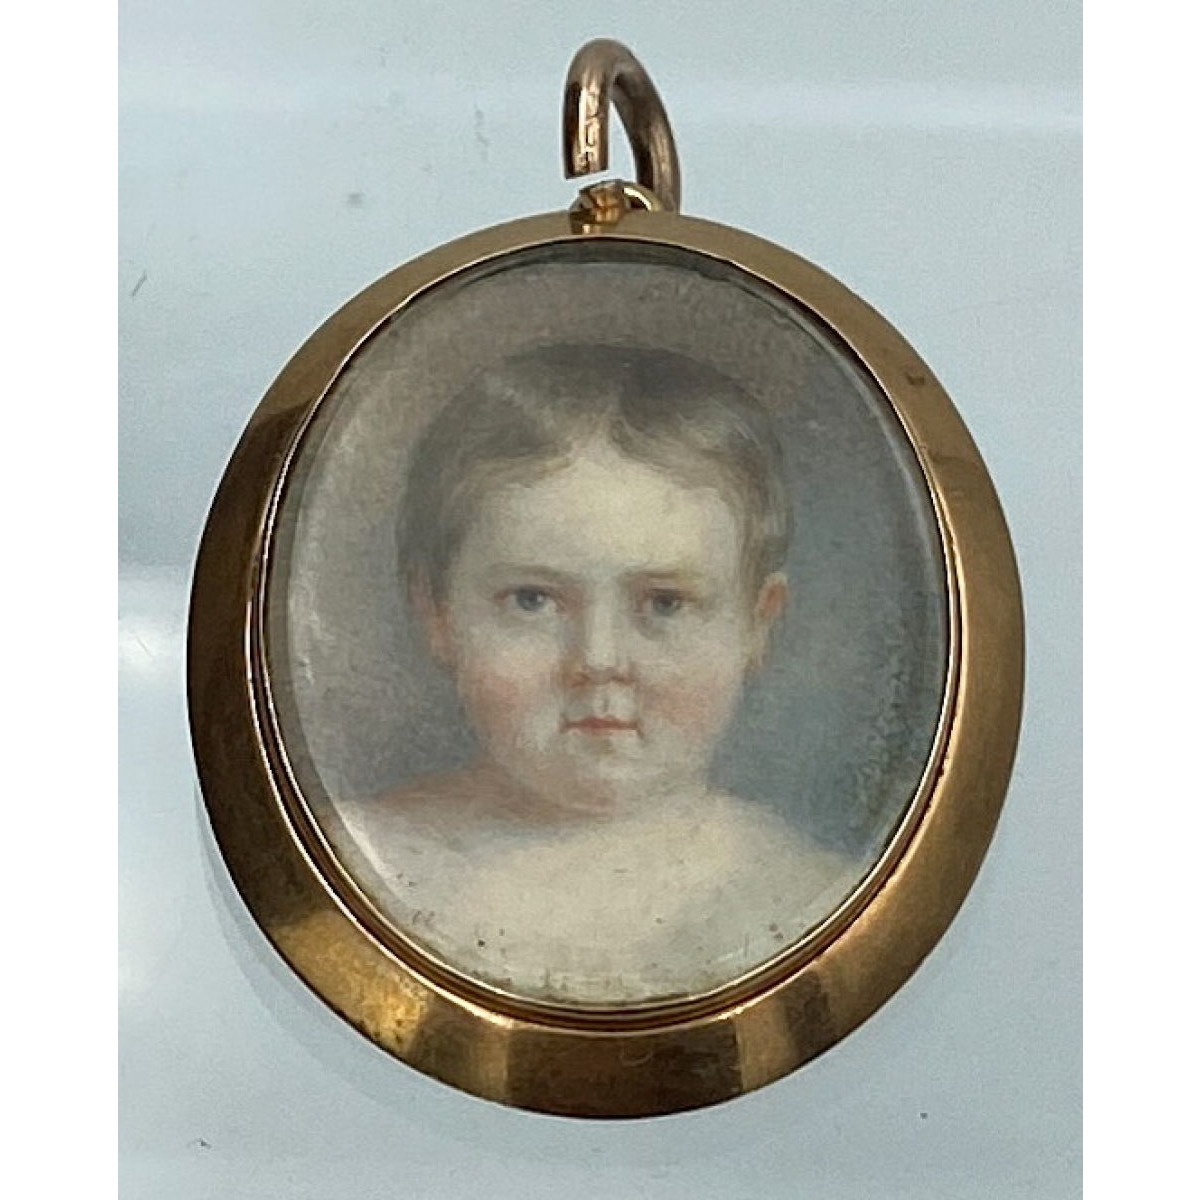 Hand-Painted Miniature Portrait in a Rose Gold Locket, Antique English Gold Pendant